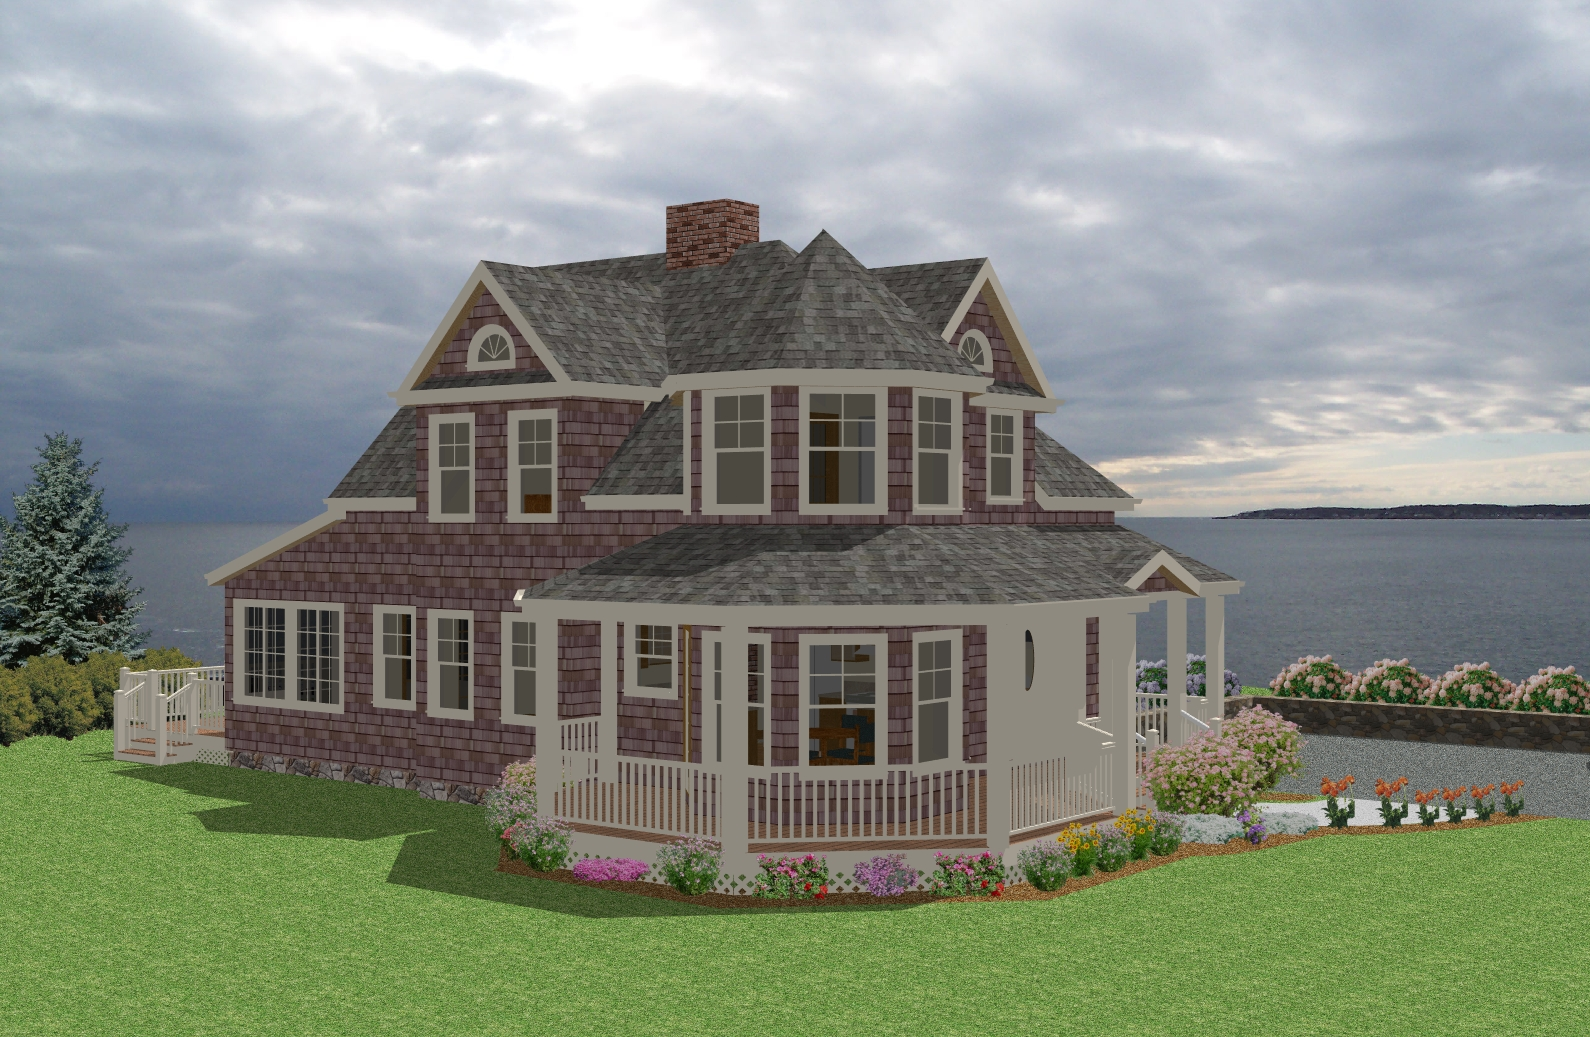 New england cottage house plans find house plans Buy house plans